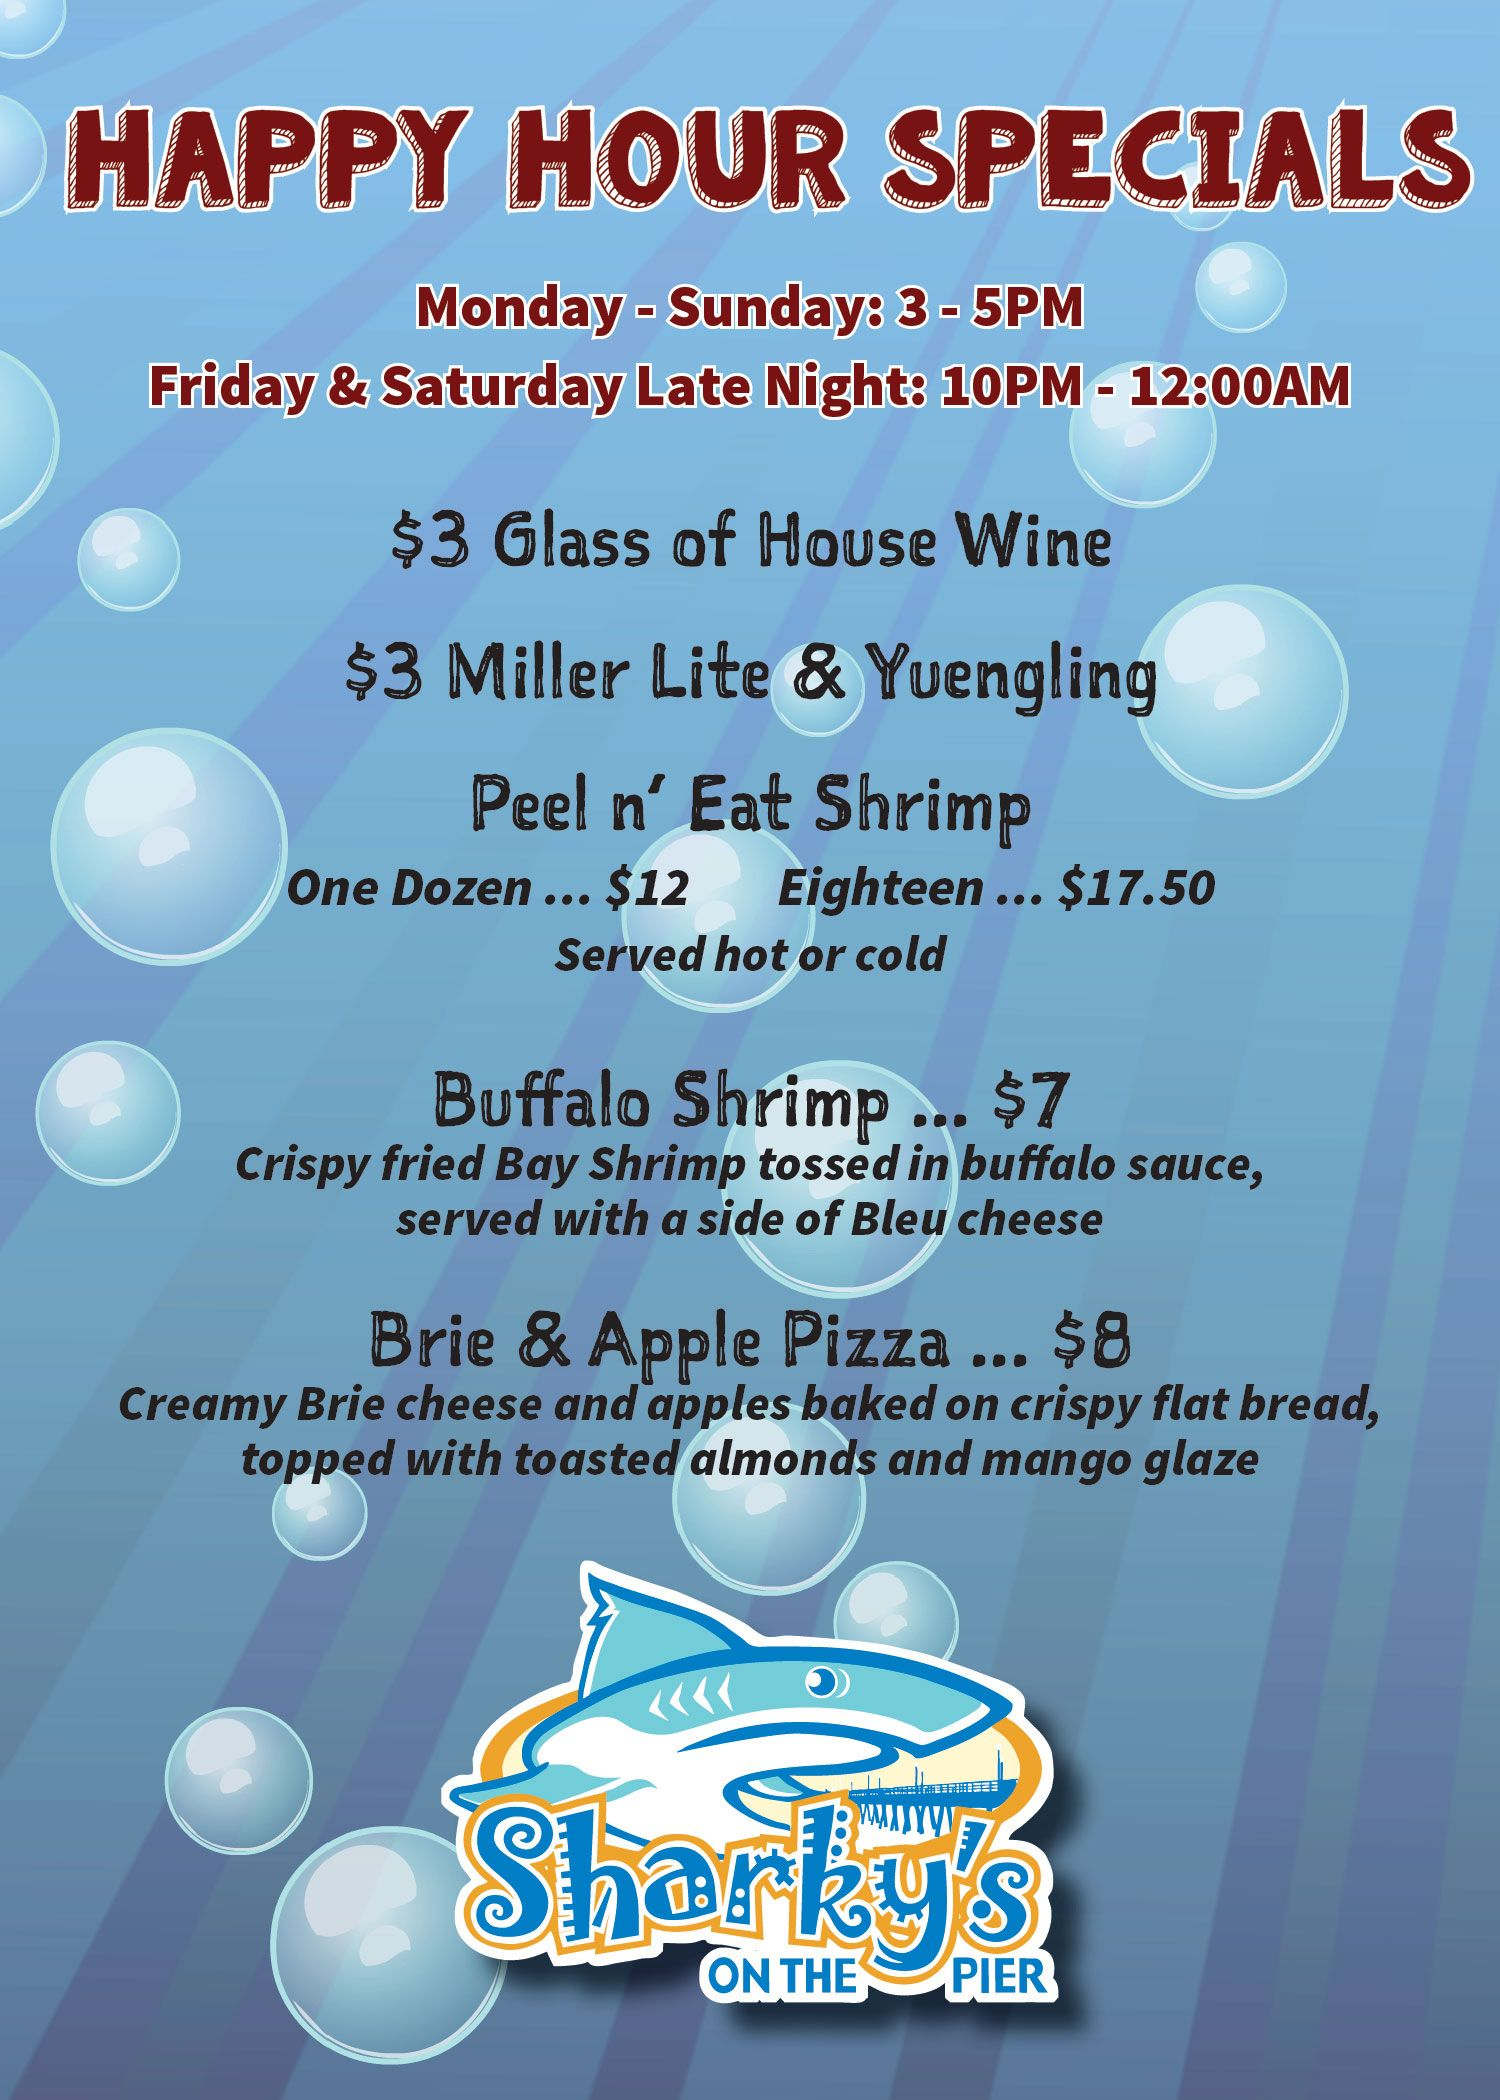 Sharkys Happy Hour Menu 1.29.19